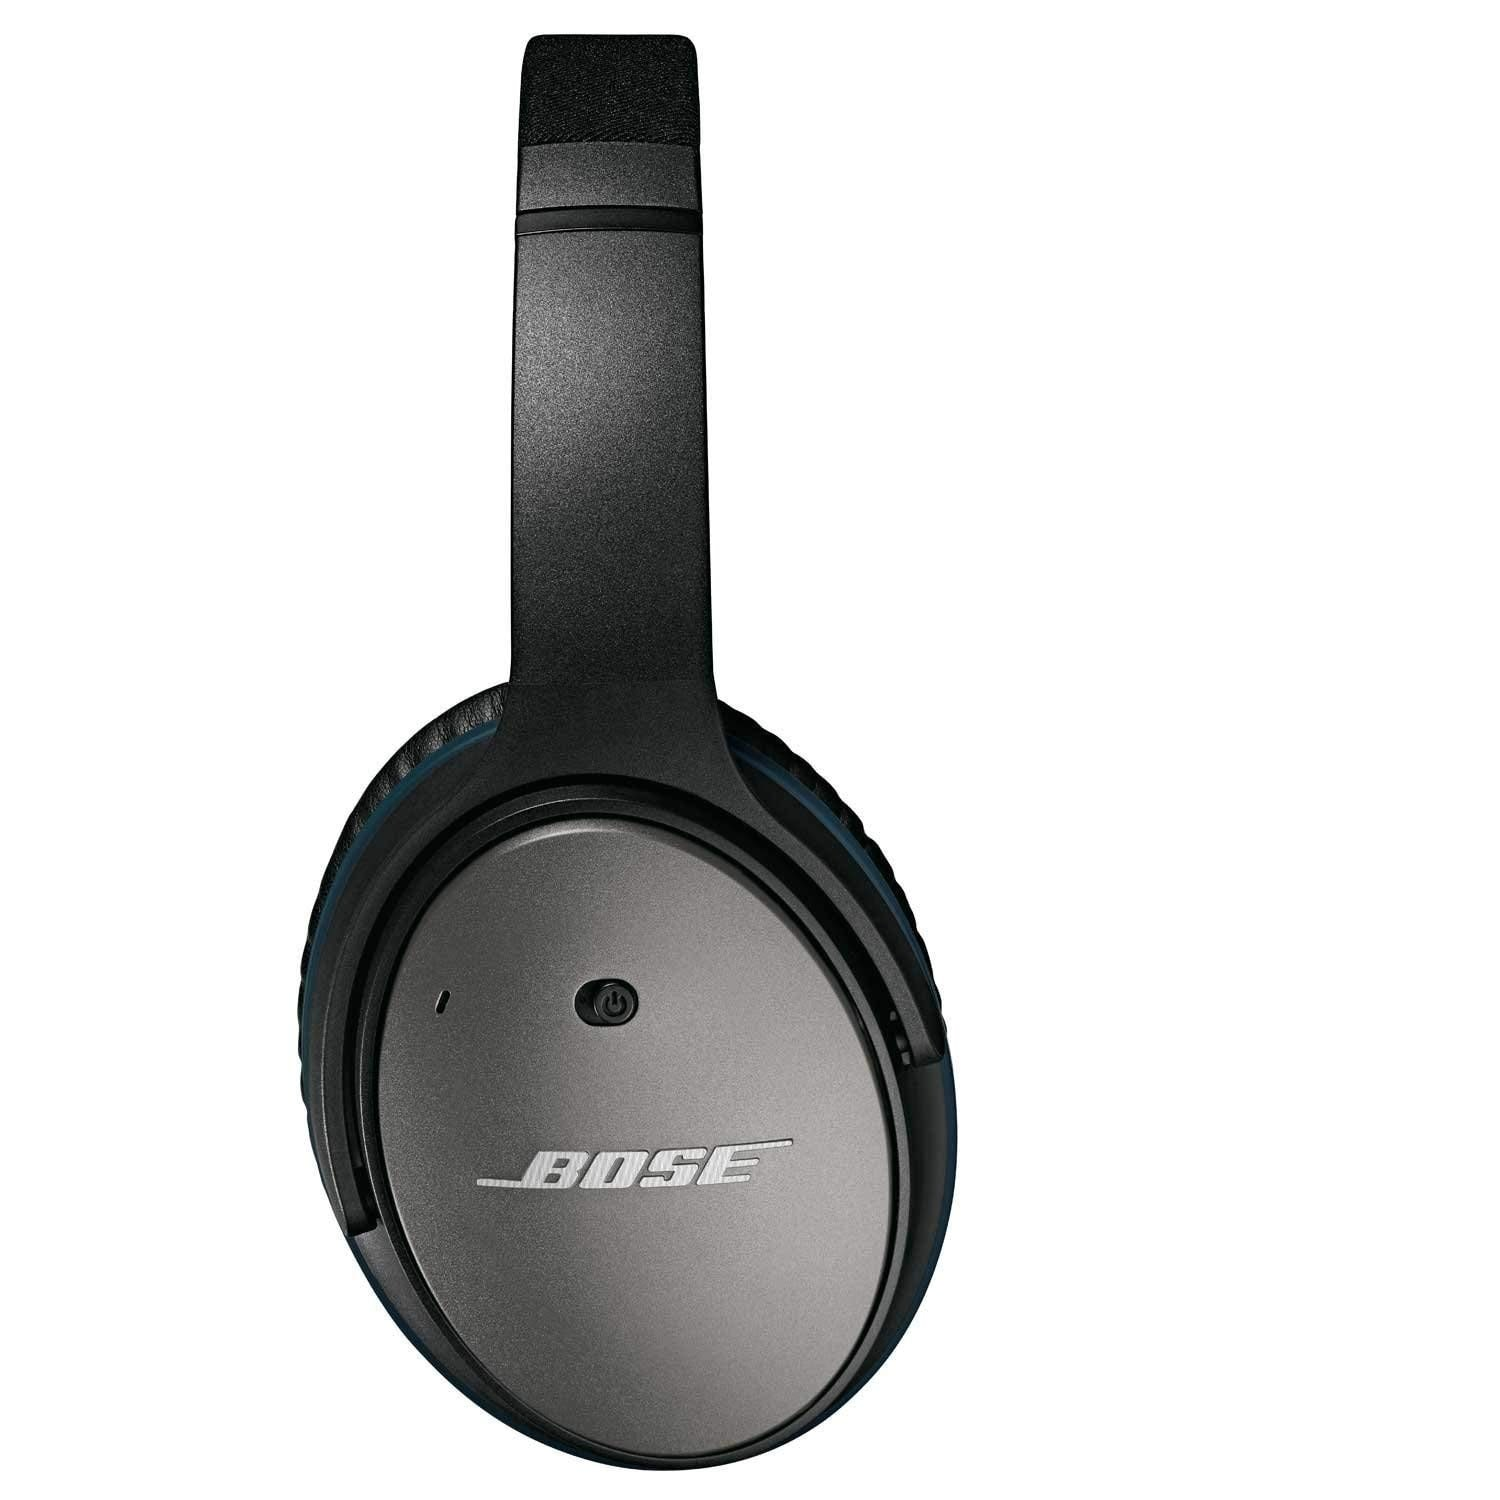 new concept dc9ed a03bb Bose QuietComfort 25 Acoustic Noise Cancelling Headphones - Black (wired,  3.5mm)